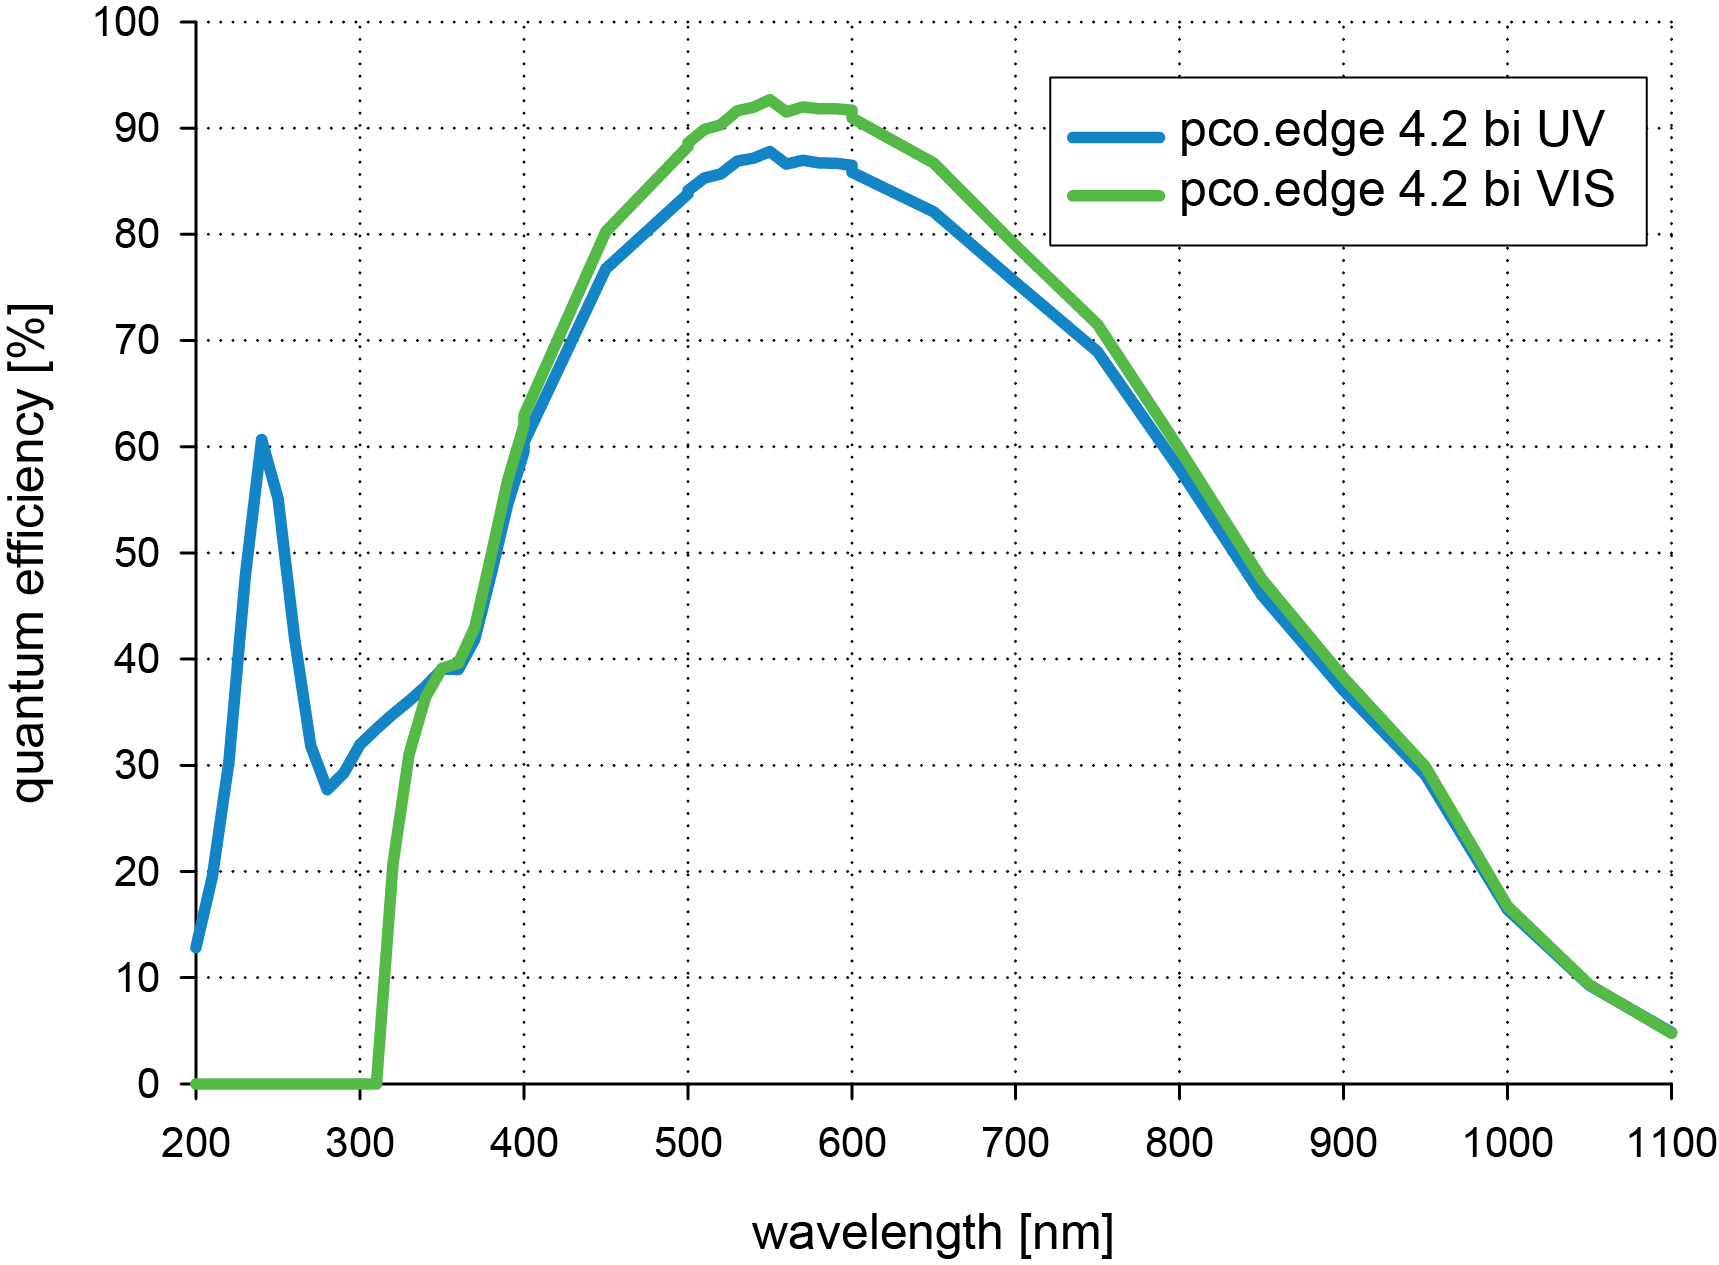 QE curve comparison of pco.edge 4.2 bi uv and vis